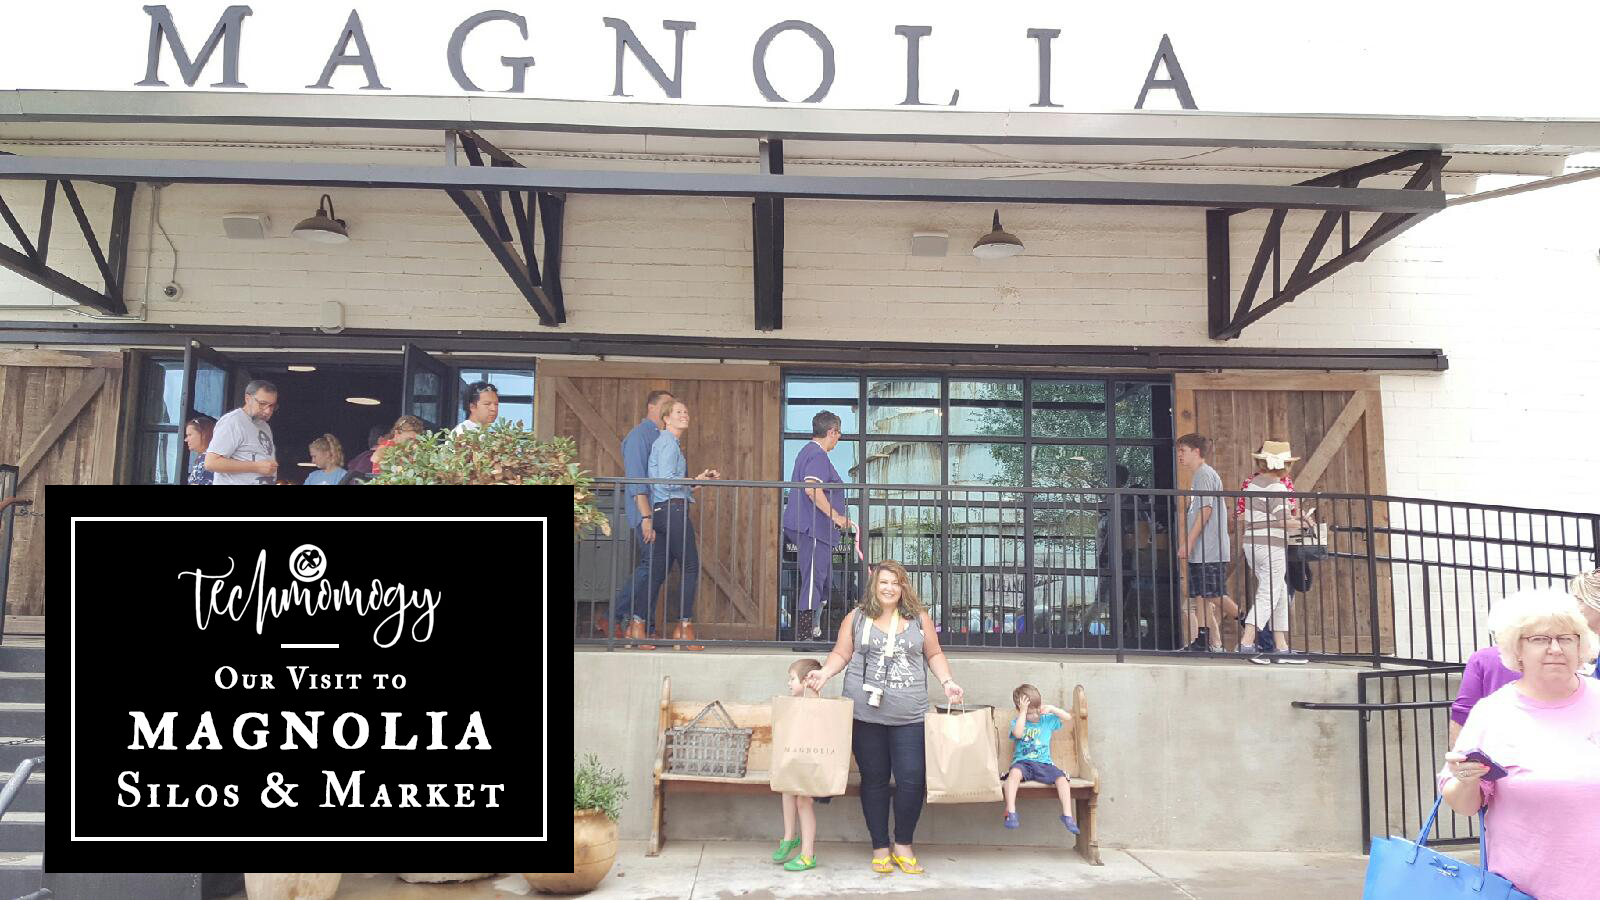 our-visit-to-magnolia-silos-market-techmomogy